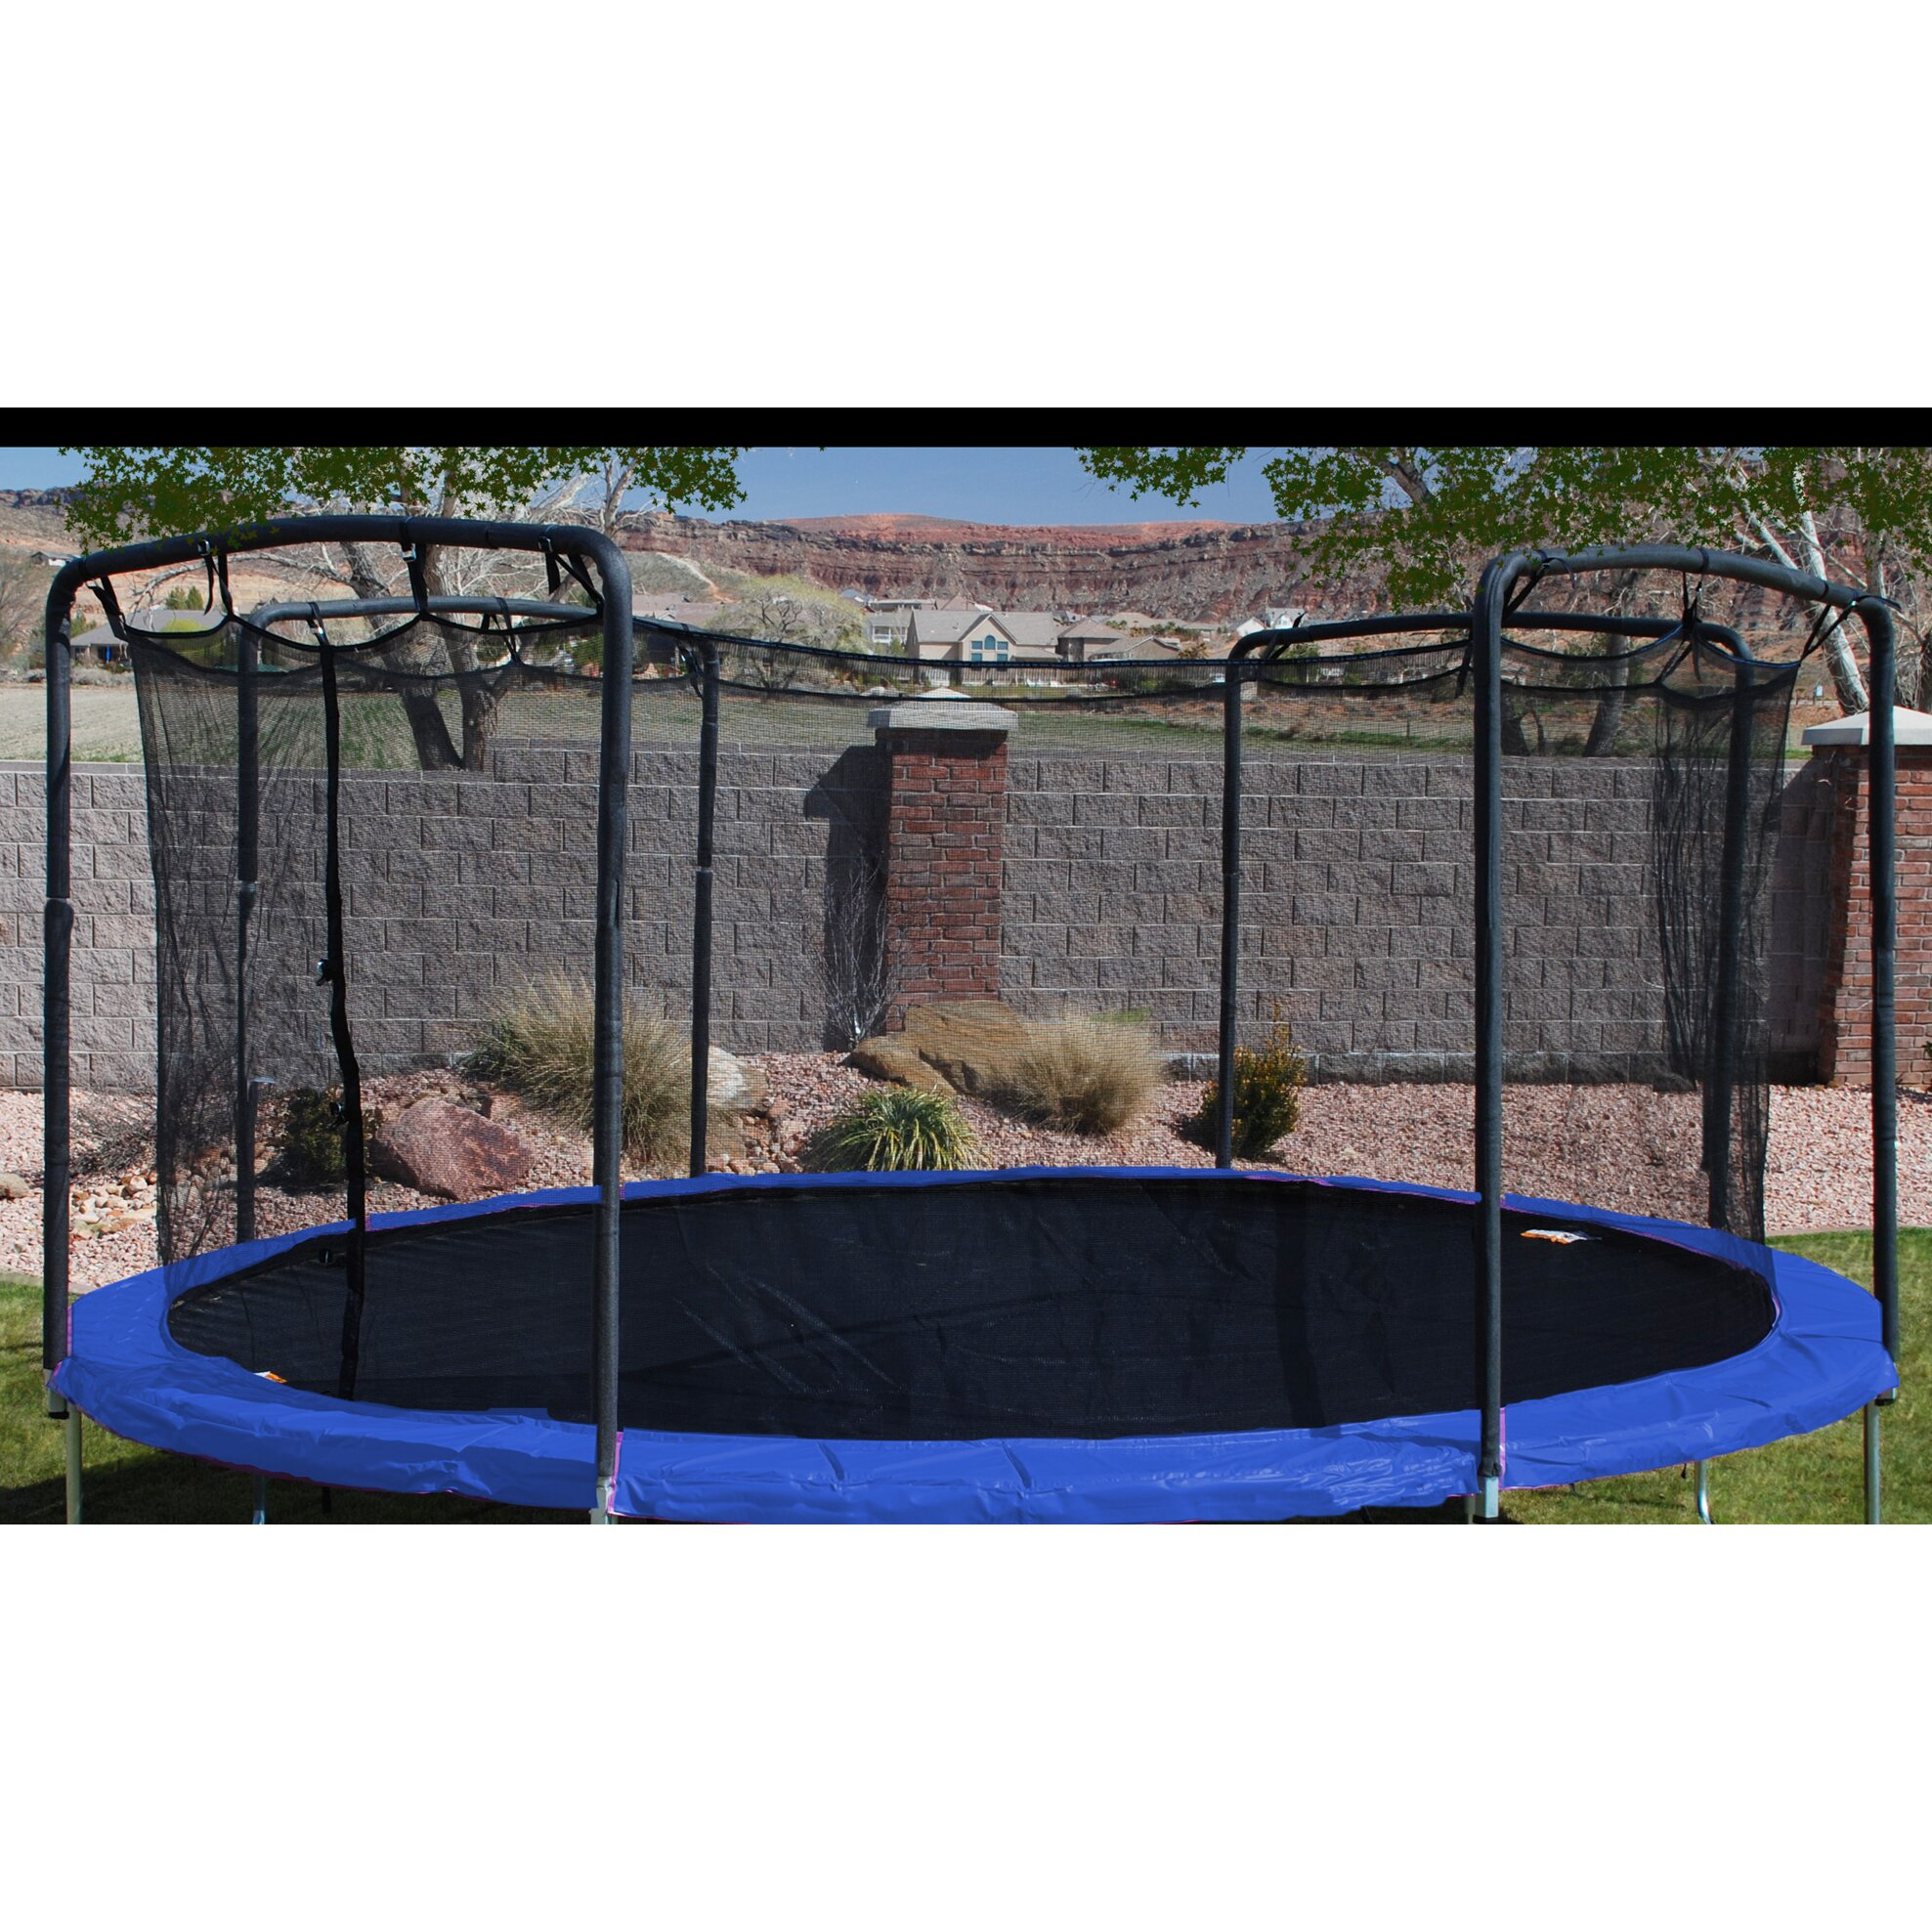 Skywalker 17' X 15' Oval Trampoline Replacement Frame Pad